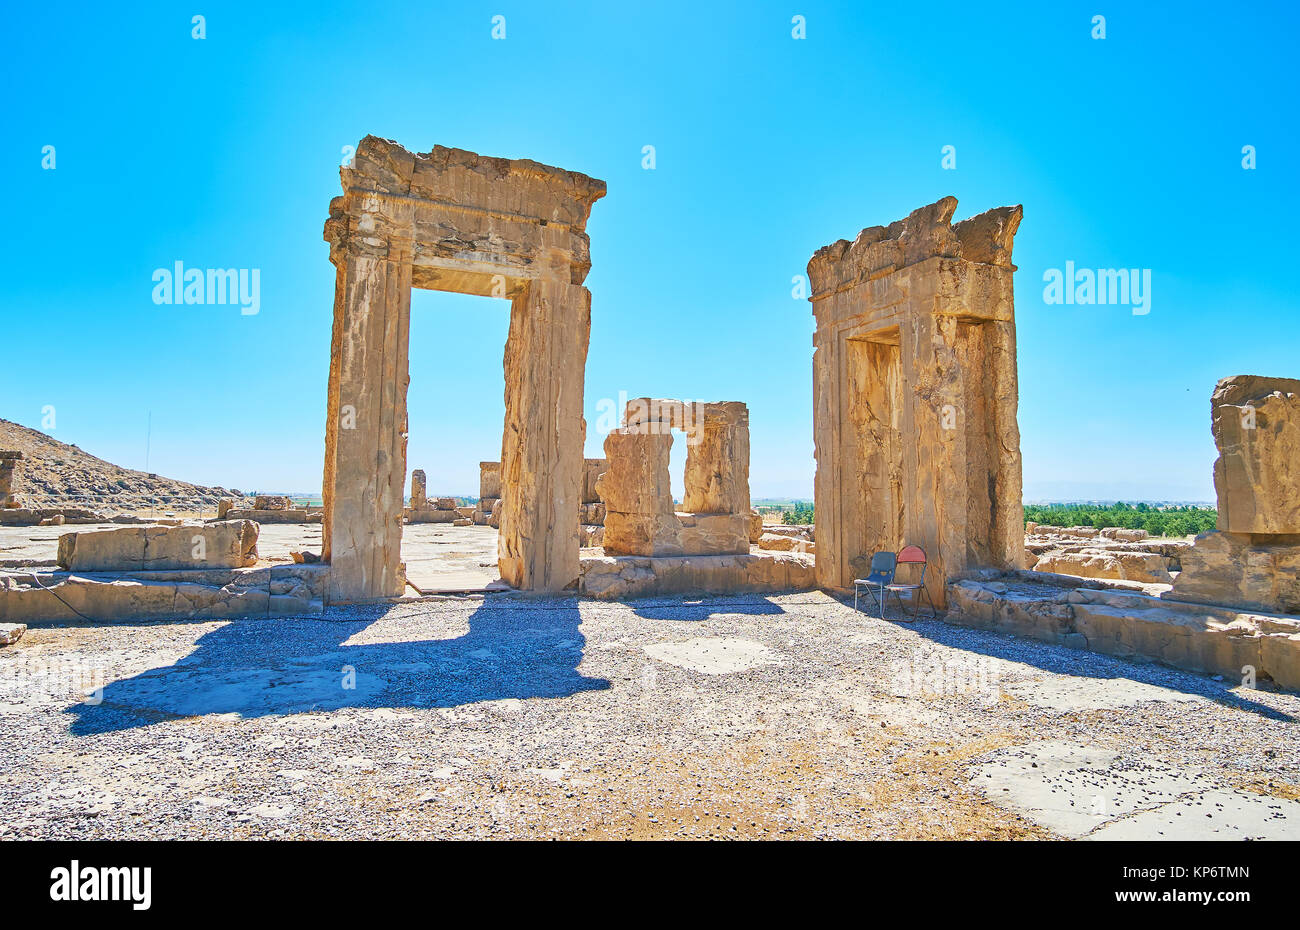 The ruins of Tripylon, ancient Council Hall of Persian King, Persepolis archaeological site, Iran. - Stock Image